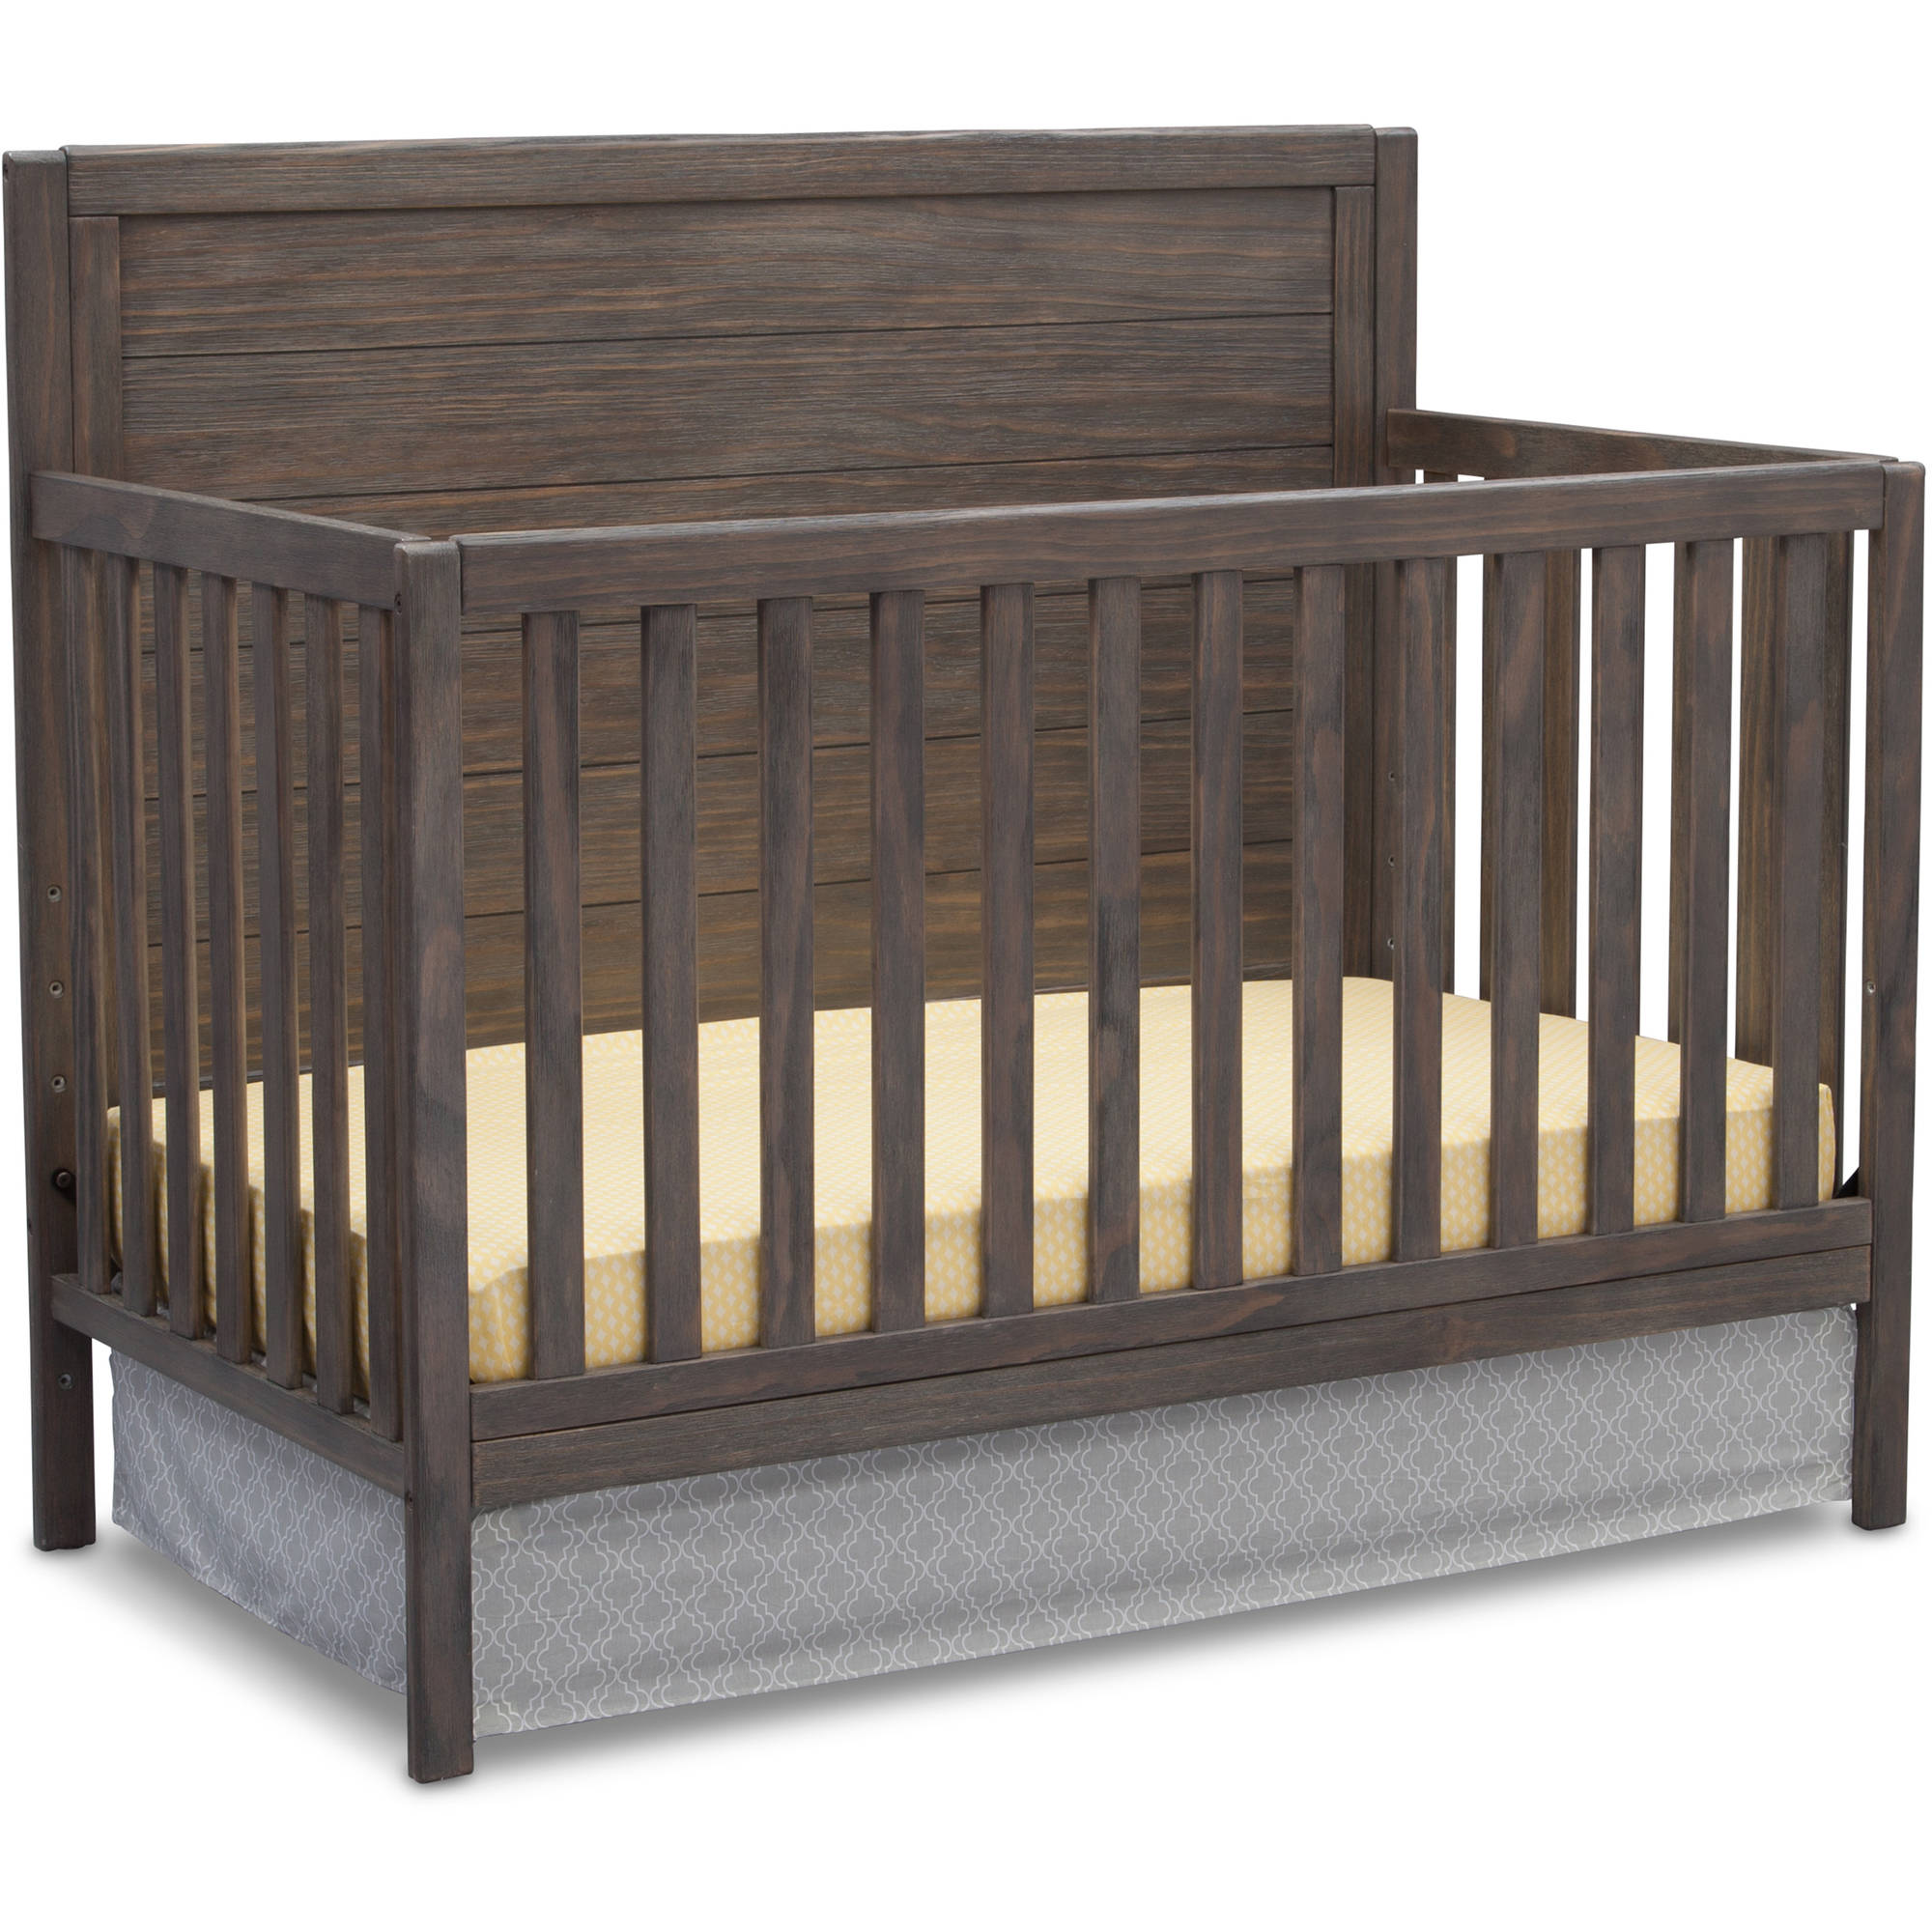 Delta Children Cambridge Mix and Match 4-in-1 Convertible Crib - Rustic Gray